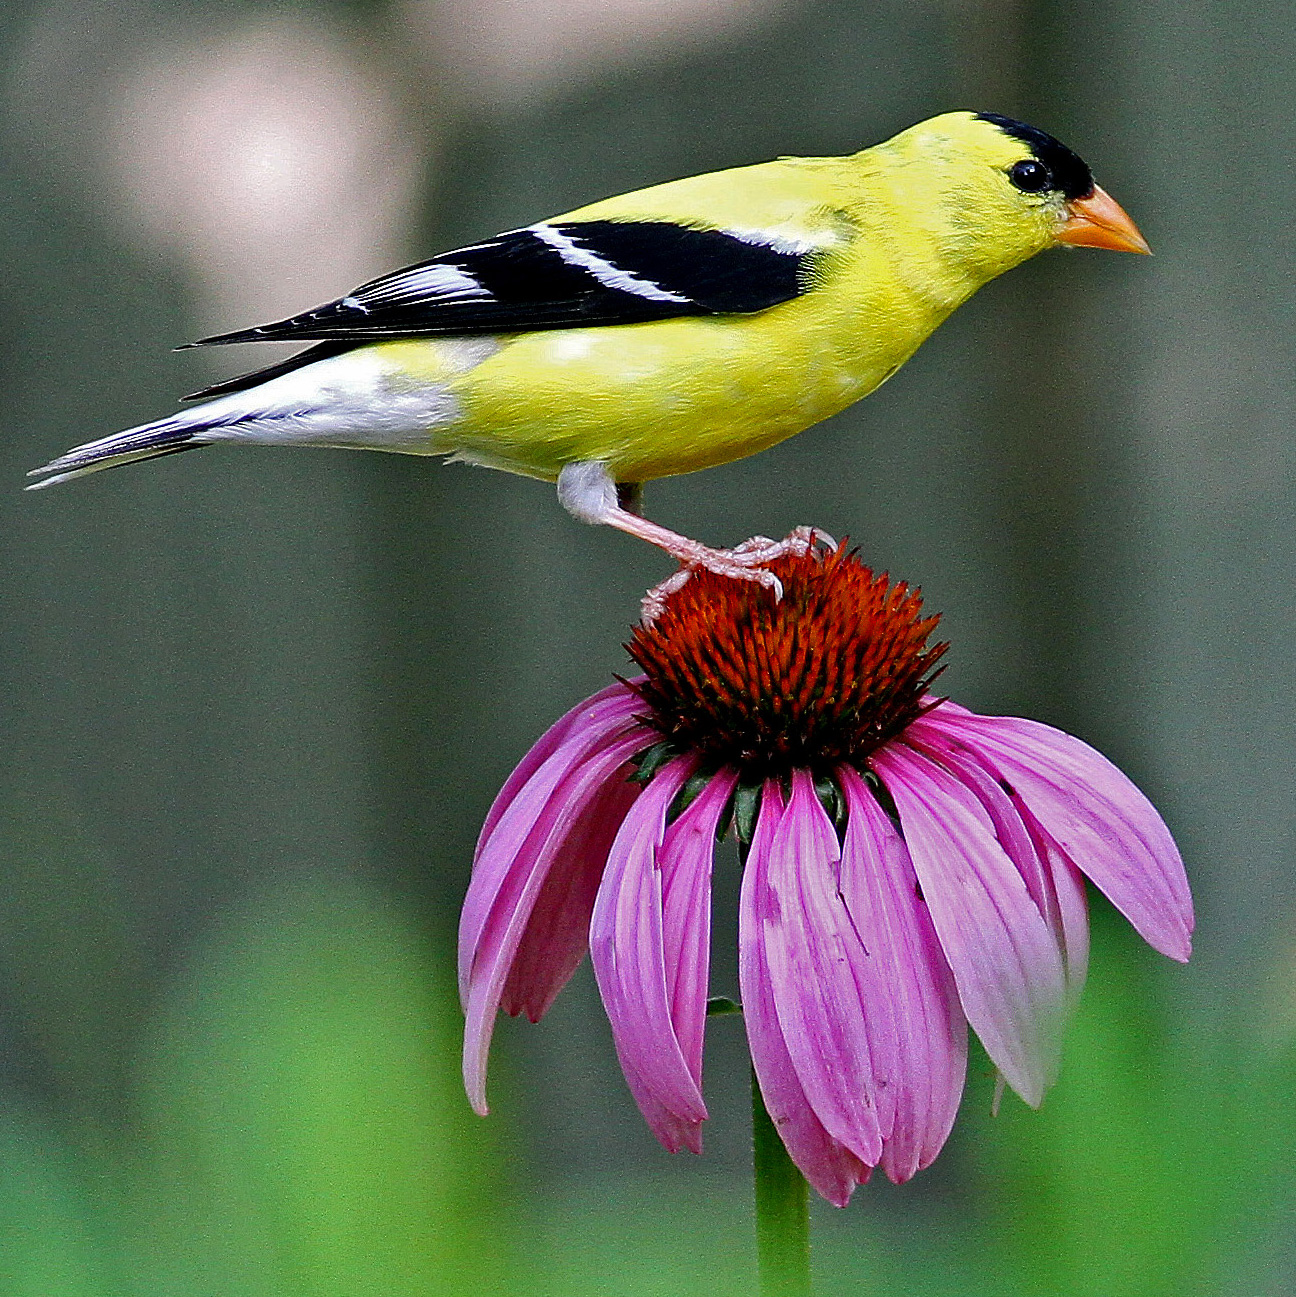 American Goldfinch on Purple Coneflower by Will Stuart cropped.jpg